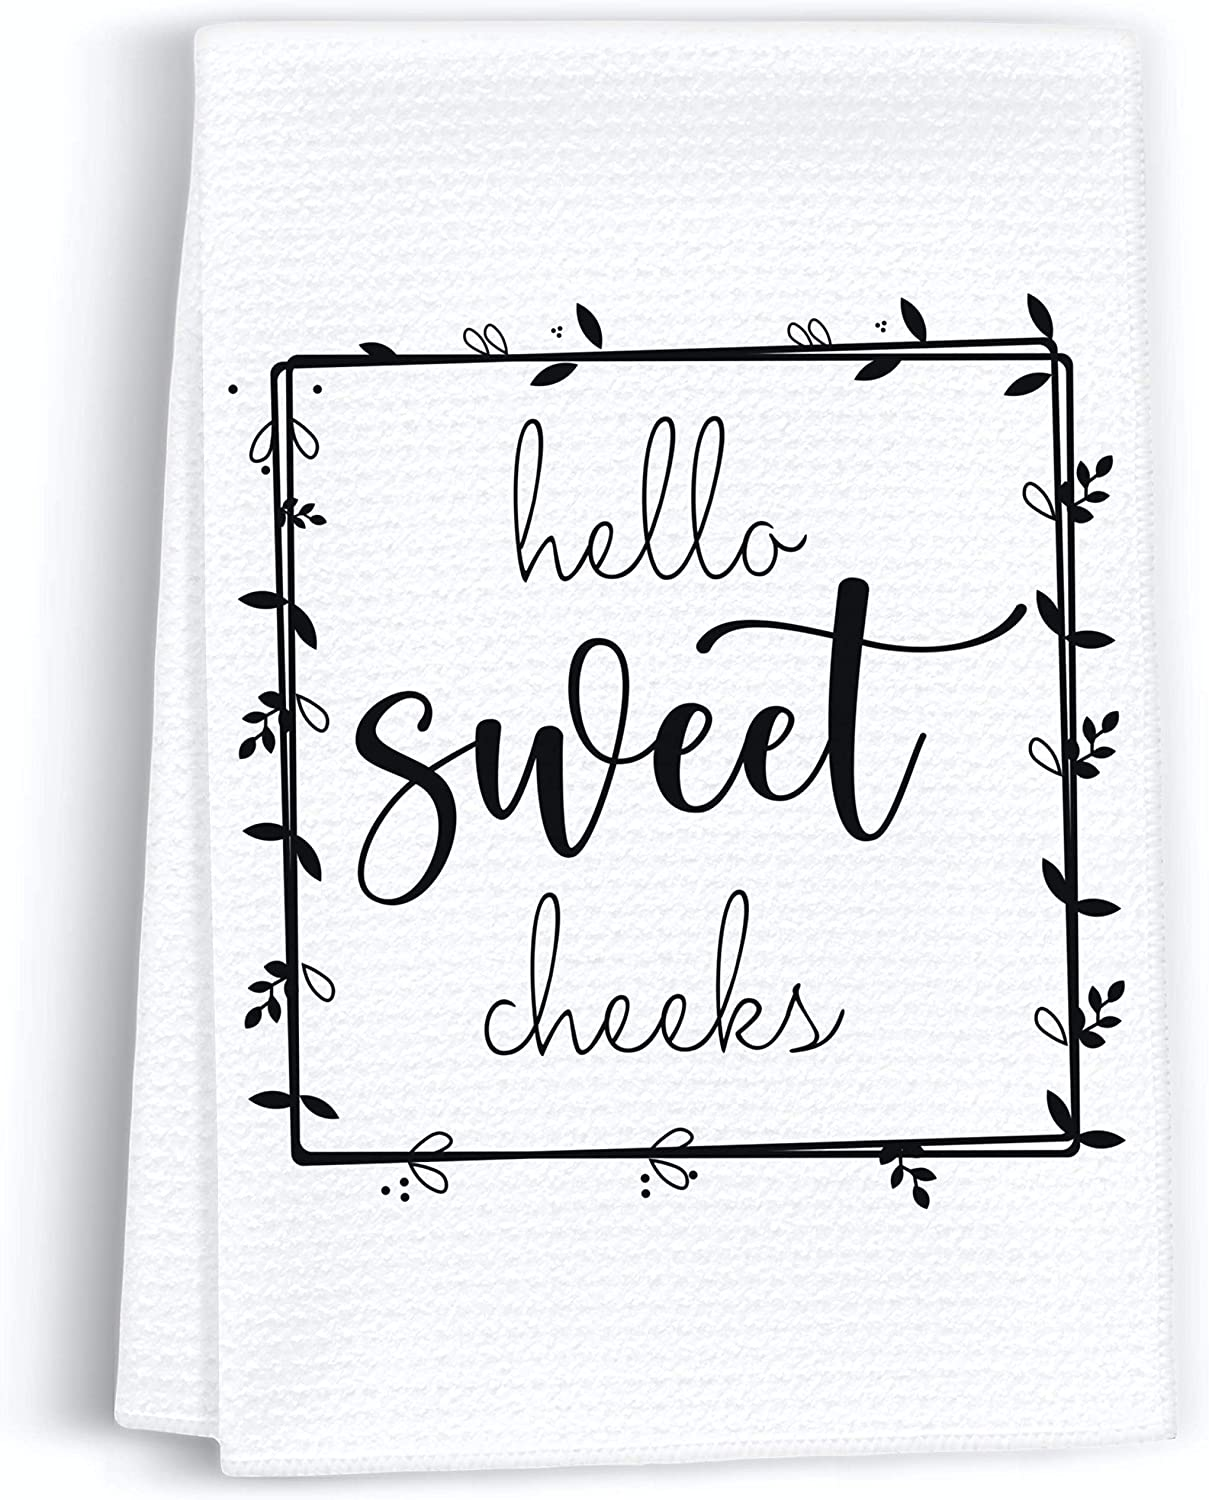 Peaces of Joy Hello Sweet Cheeks Funny Hand Towel Sayings for Bathroom, Rustic Cute Dish Kitchen Towels for Home, Decorative Farmhouse Bath Sign Gifts